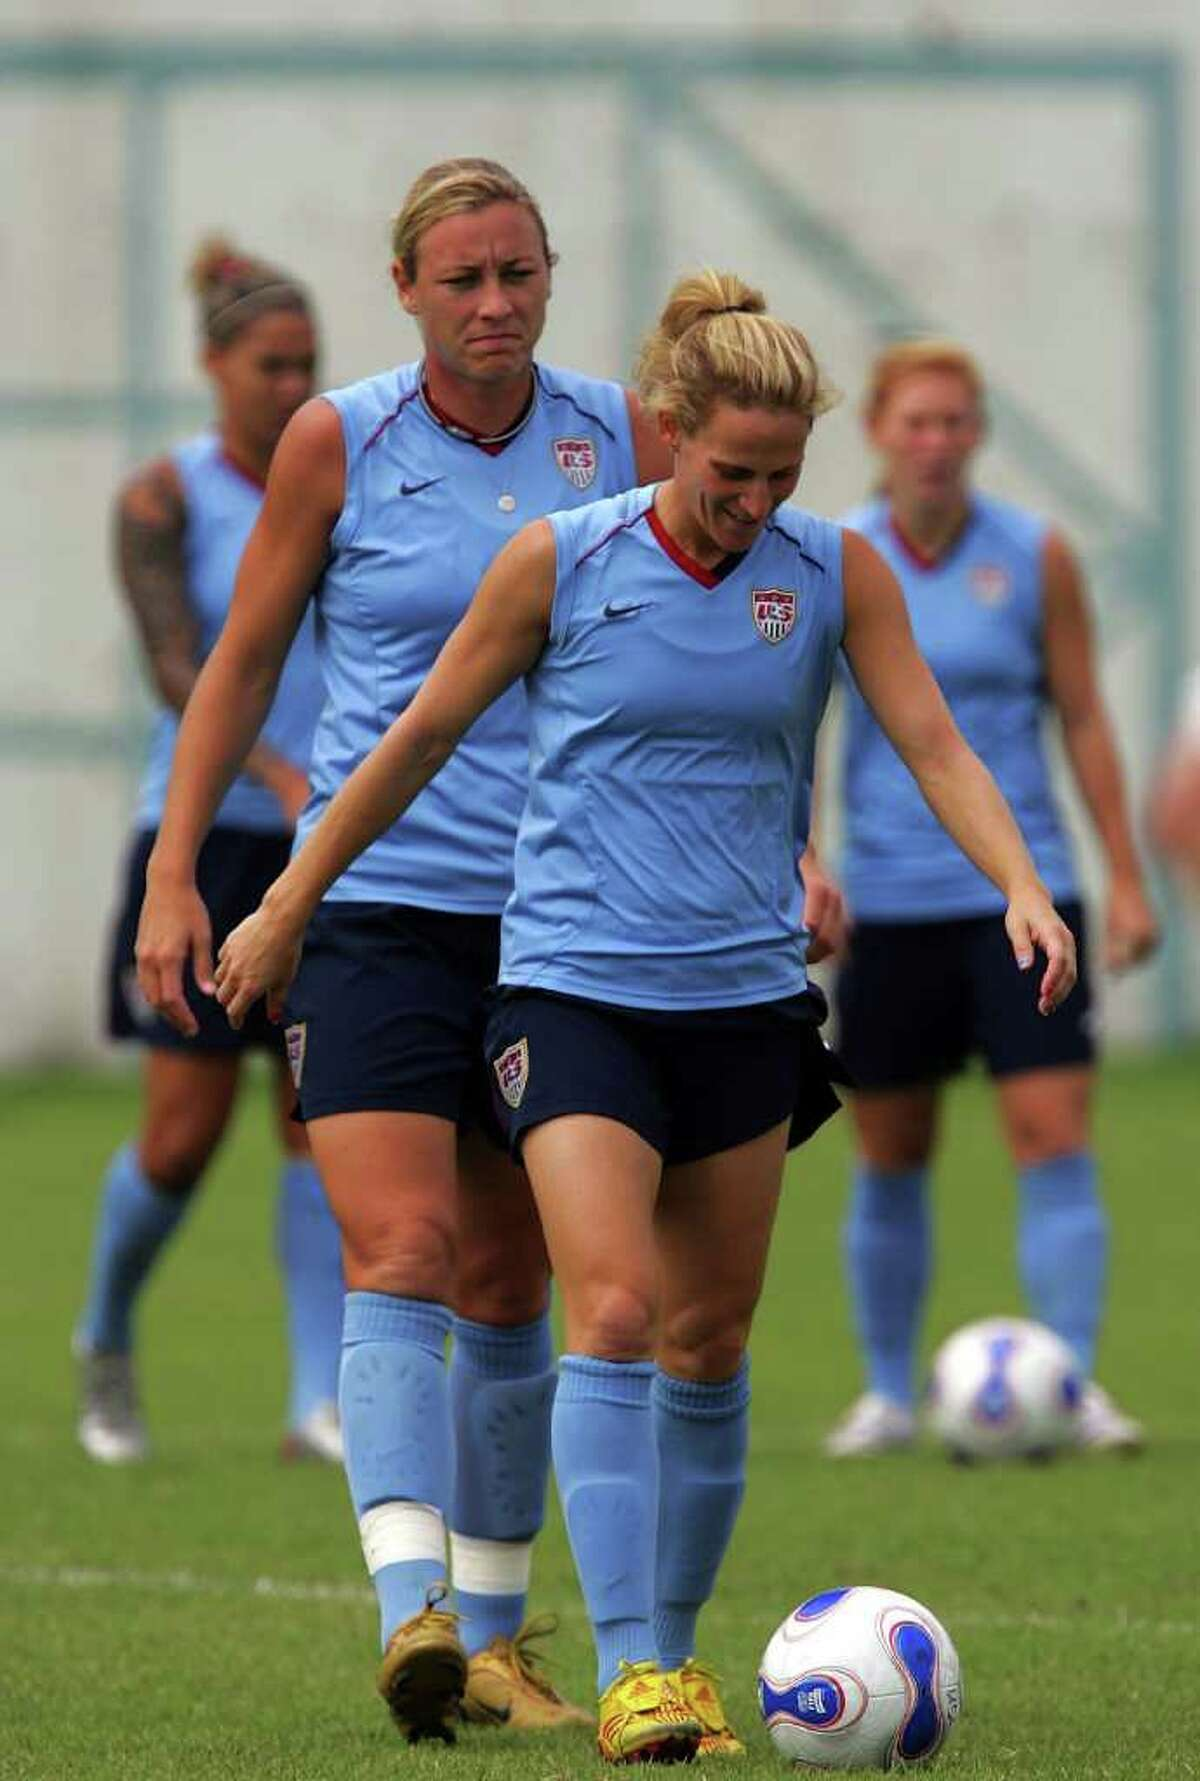 SHANGHAI, CHINA - SEPTEMBER 25: Midfielder Kristine Lilly of USA controls the bal in front of Abby Wambach during a United States of America training session for the FIFA Women's World Cup at Shanghai Senshua FC on September 25, 2007 in Shanghai, China. (Photo by Ronald Martinez/Getty Images) *** Local Caption *** Kristine Lilly;Abby Wambach